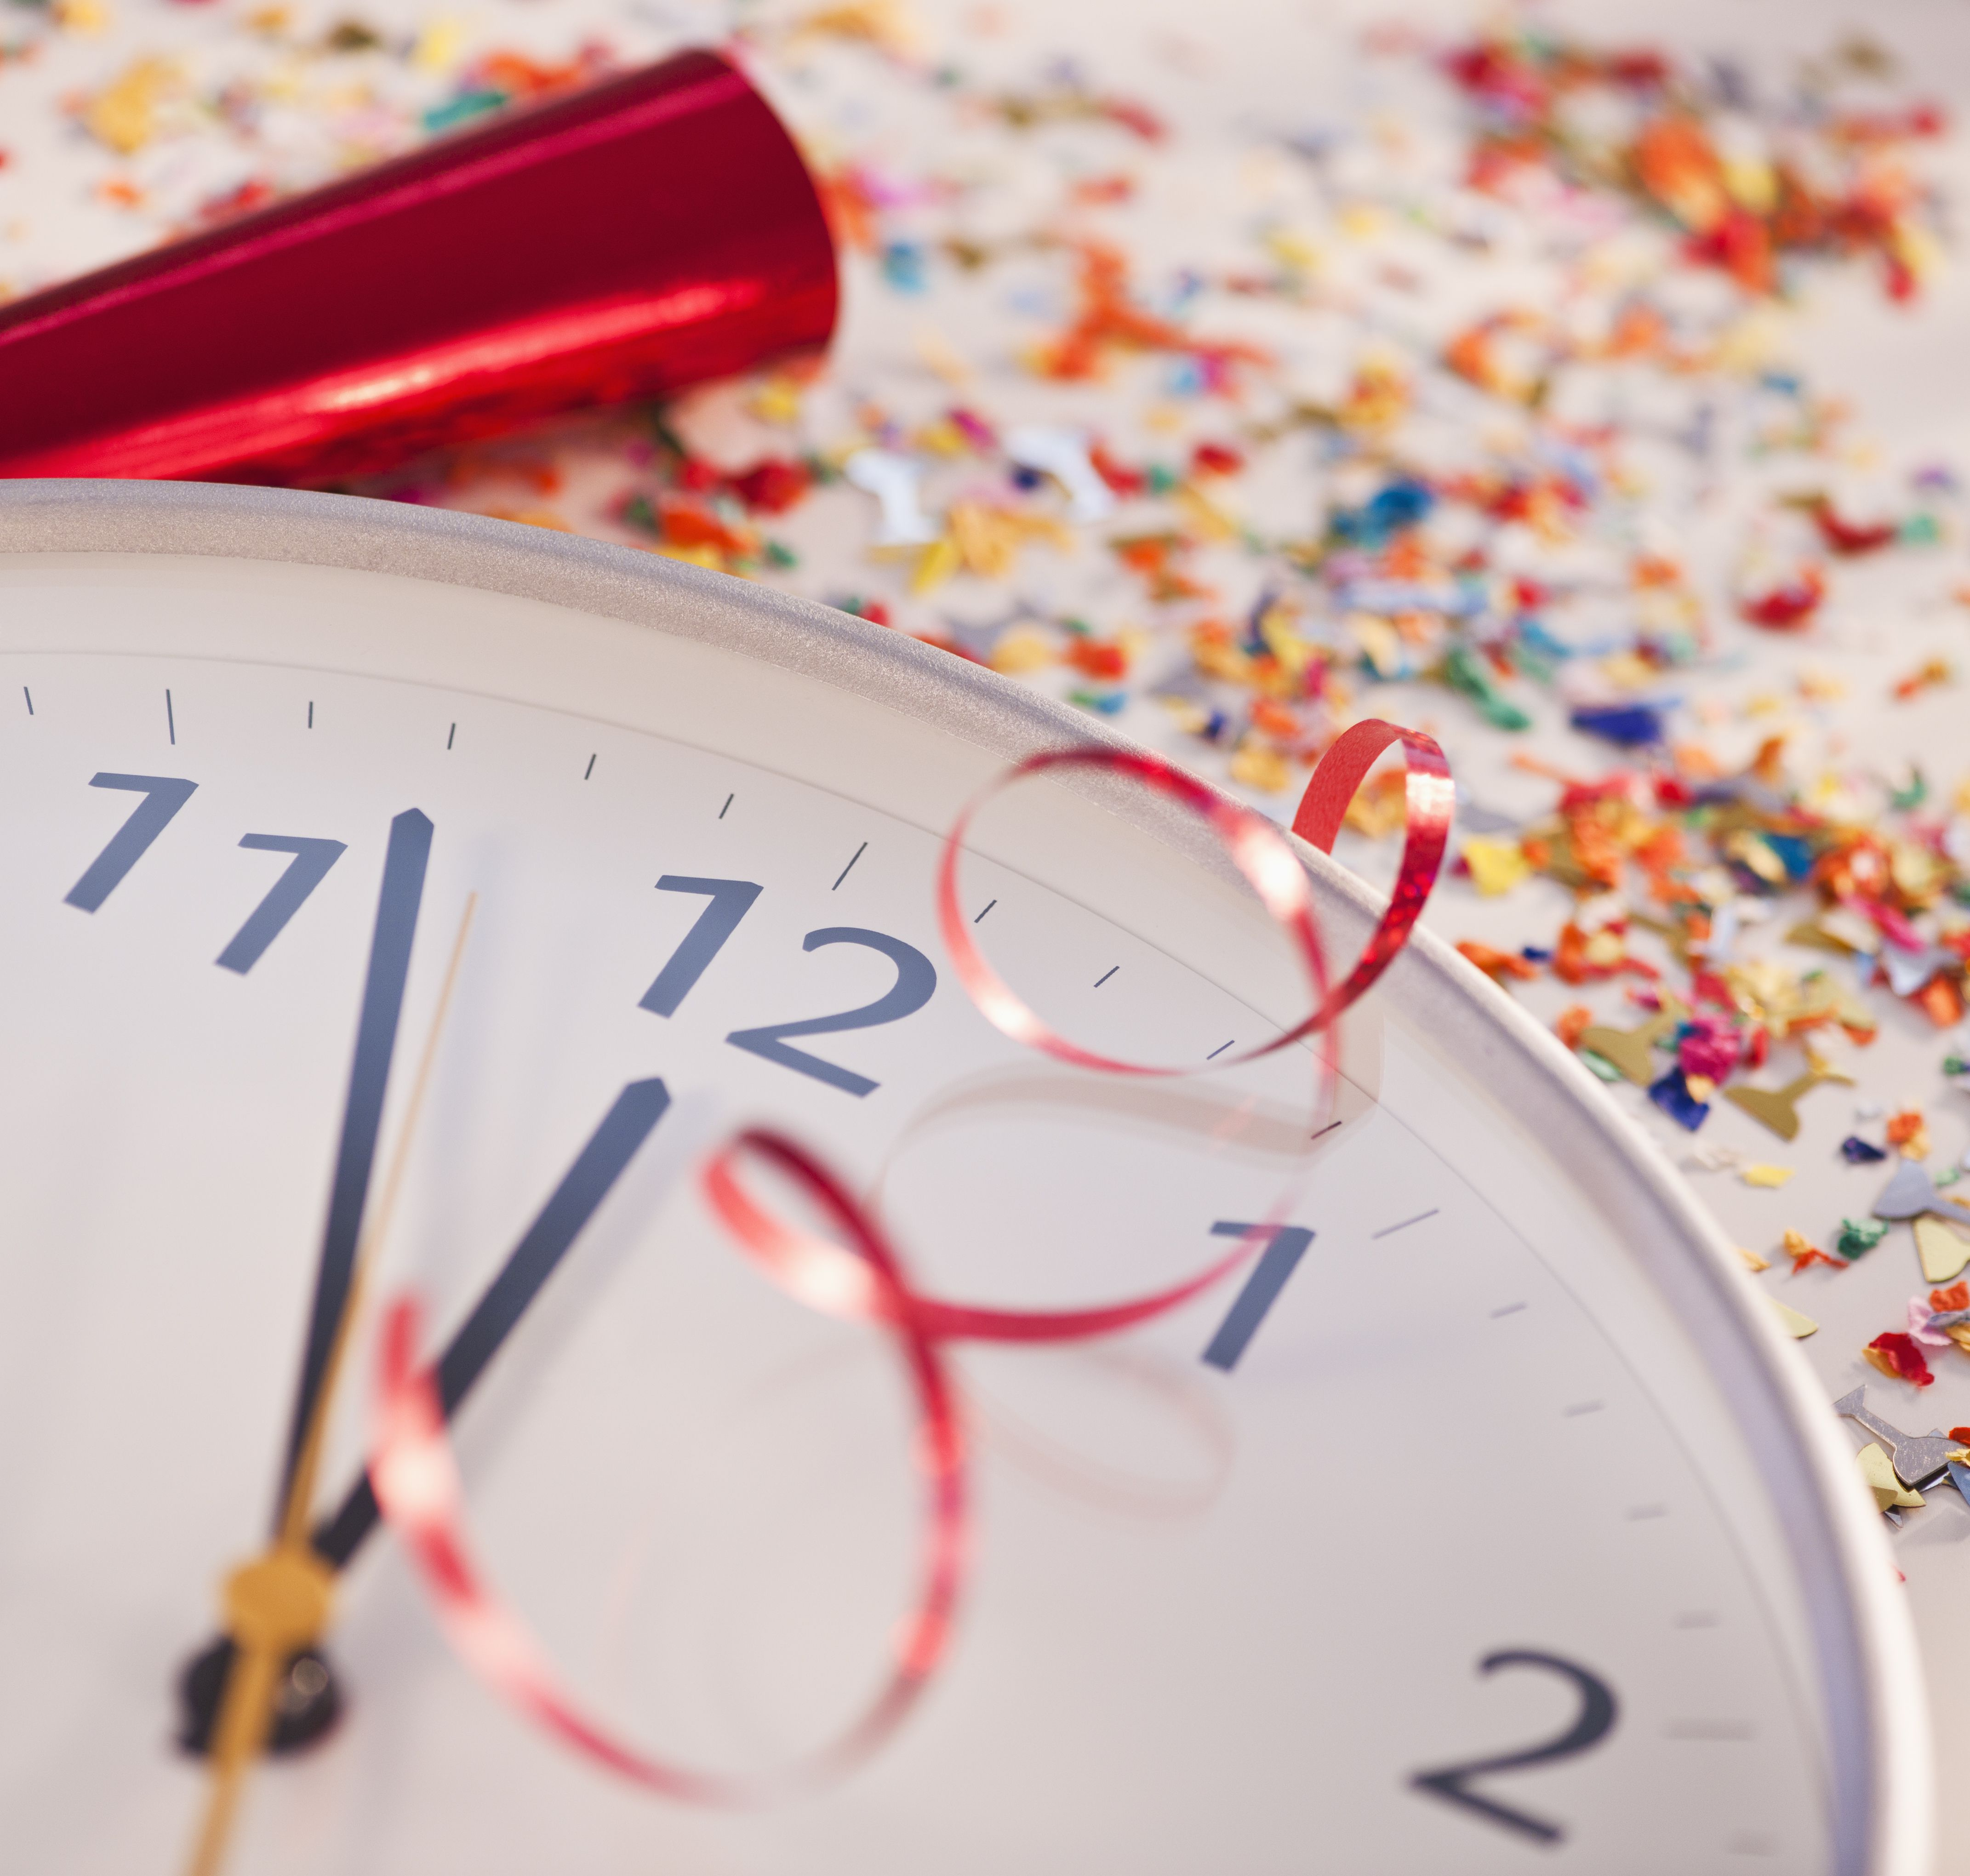 Take Control of Your Finances With These New Year's Resolutions